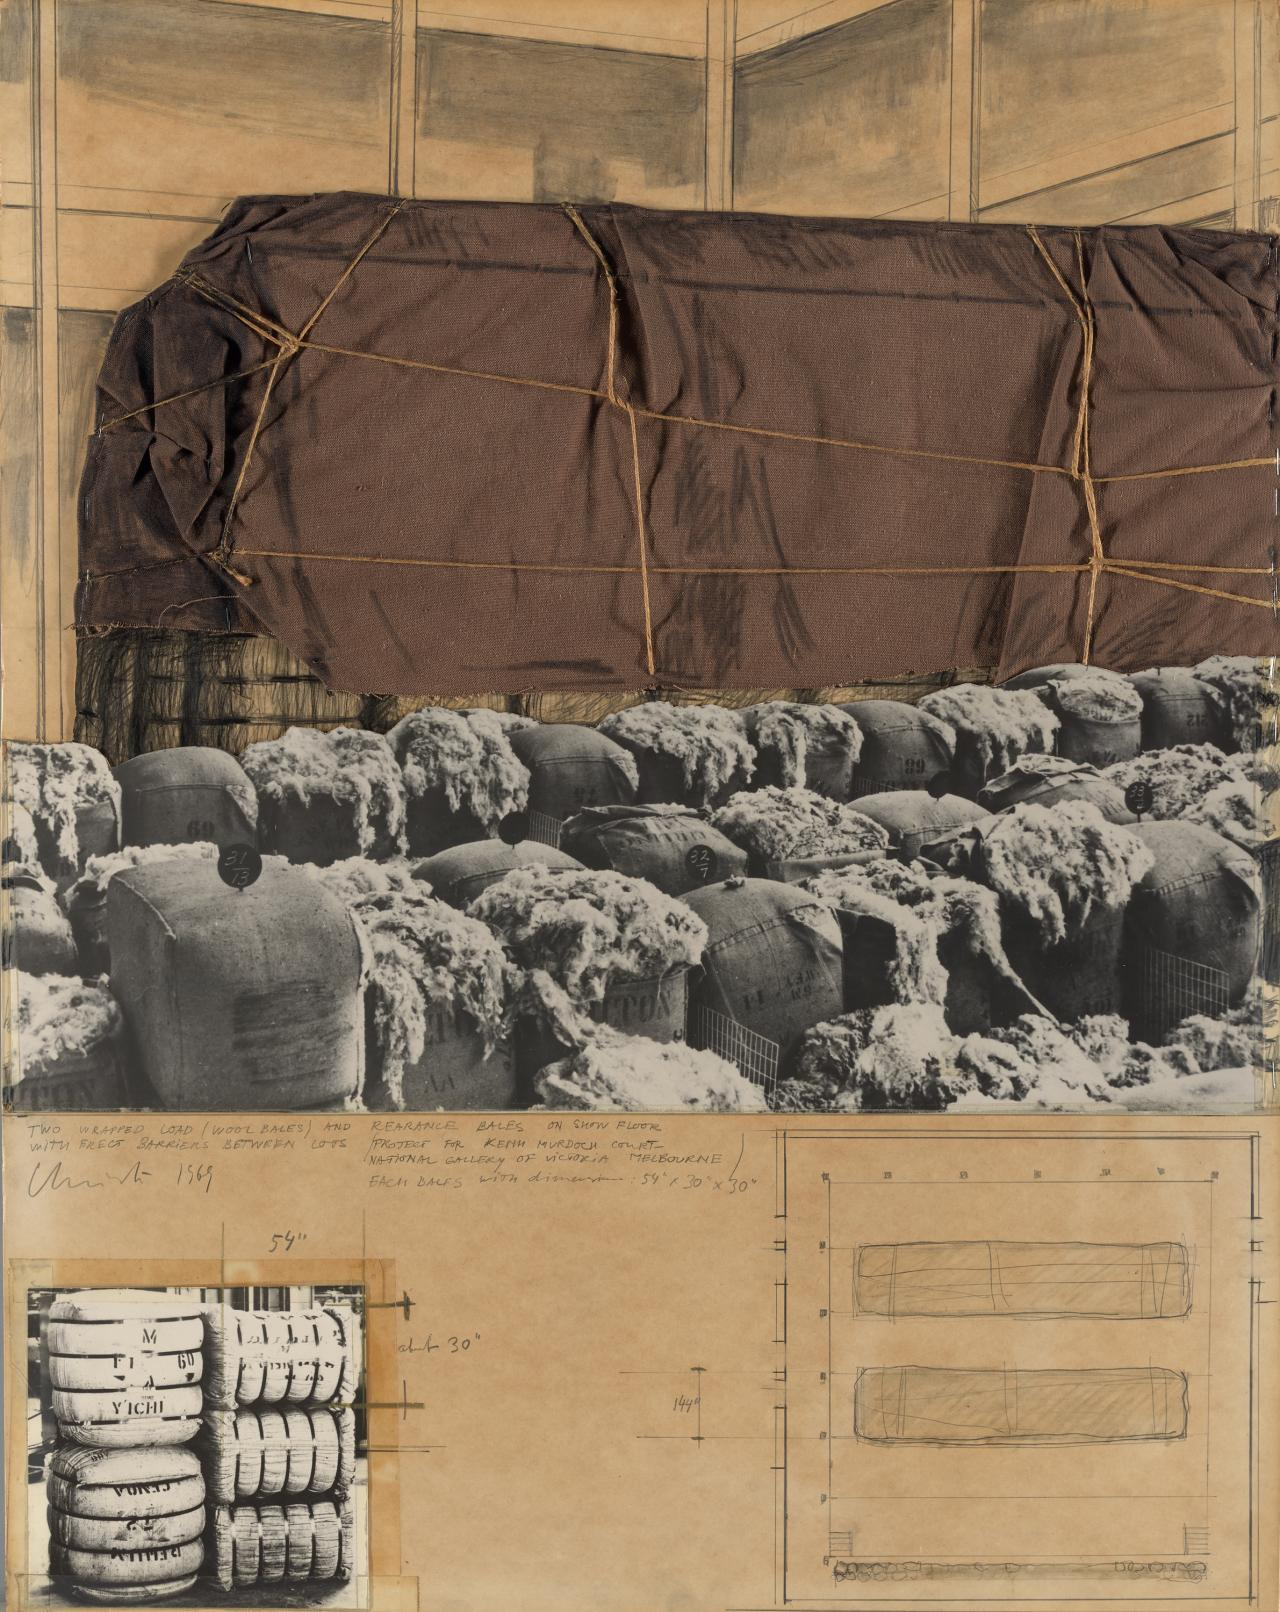 Two Wrapped Load (Wool Bales) and Rearange Bales on Show Floor with Erect Barriers Between Lots (Project for Keith Murdoch Court, National Gallery of Victoria, Melbourne)